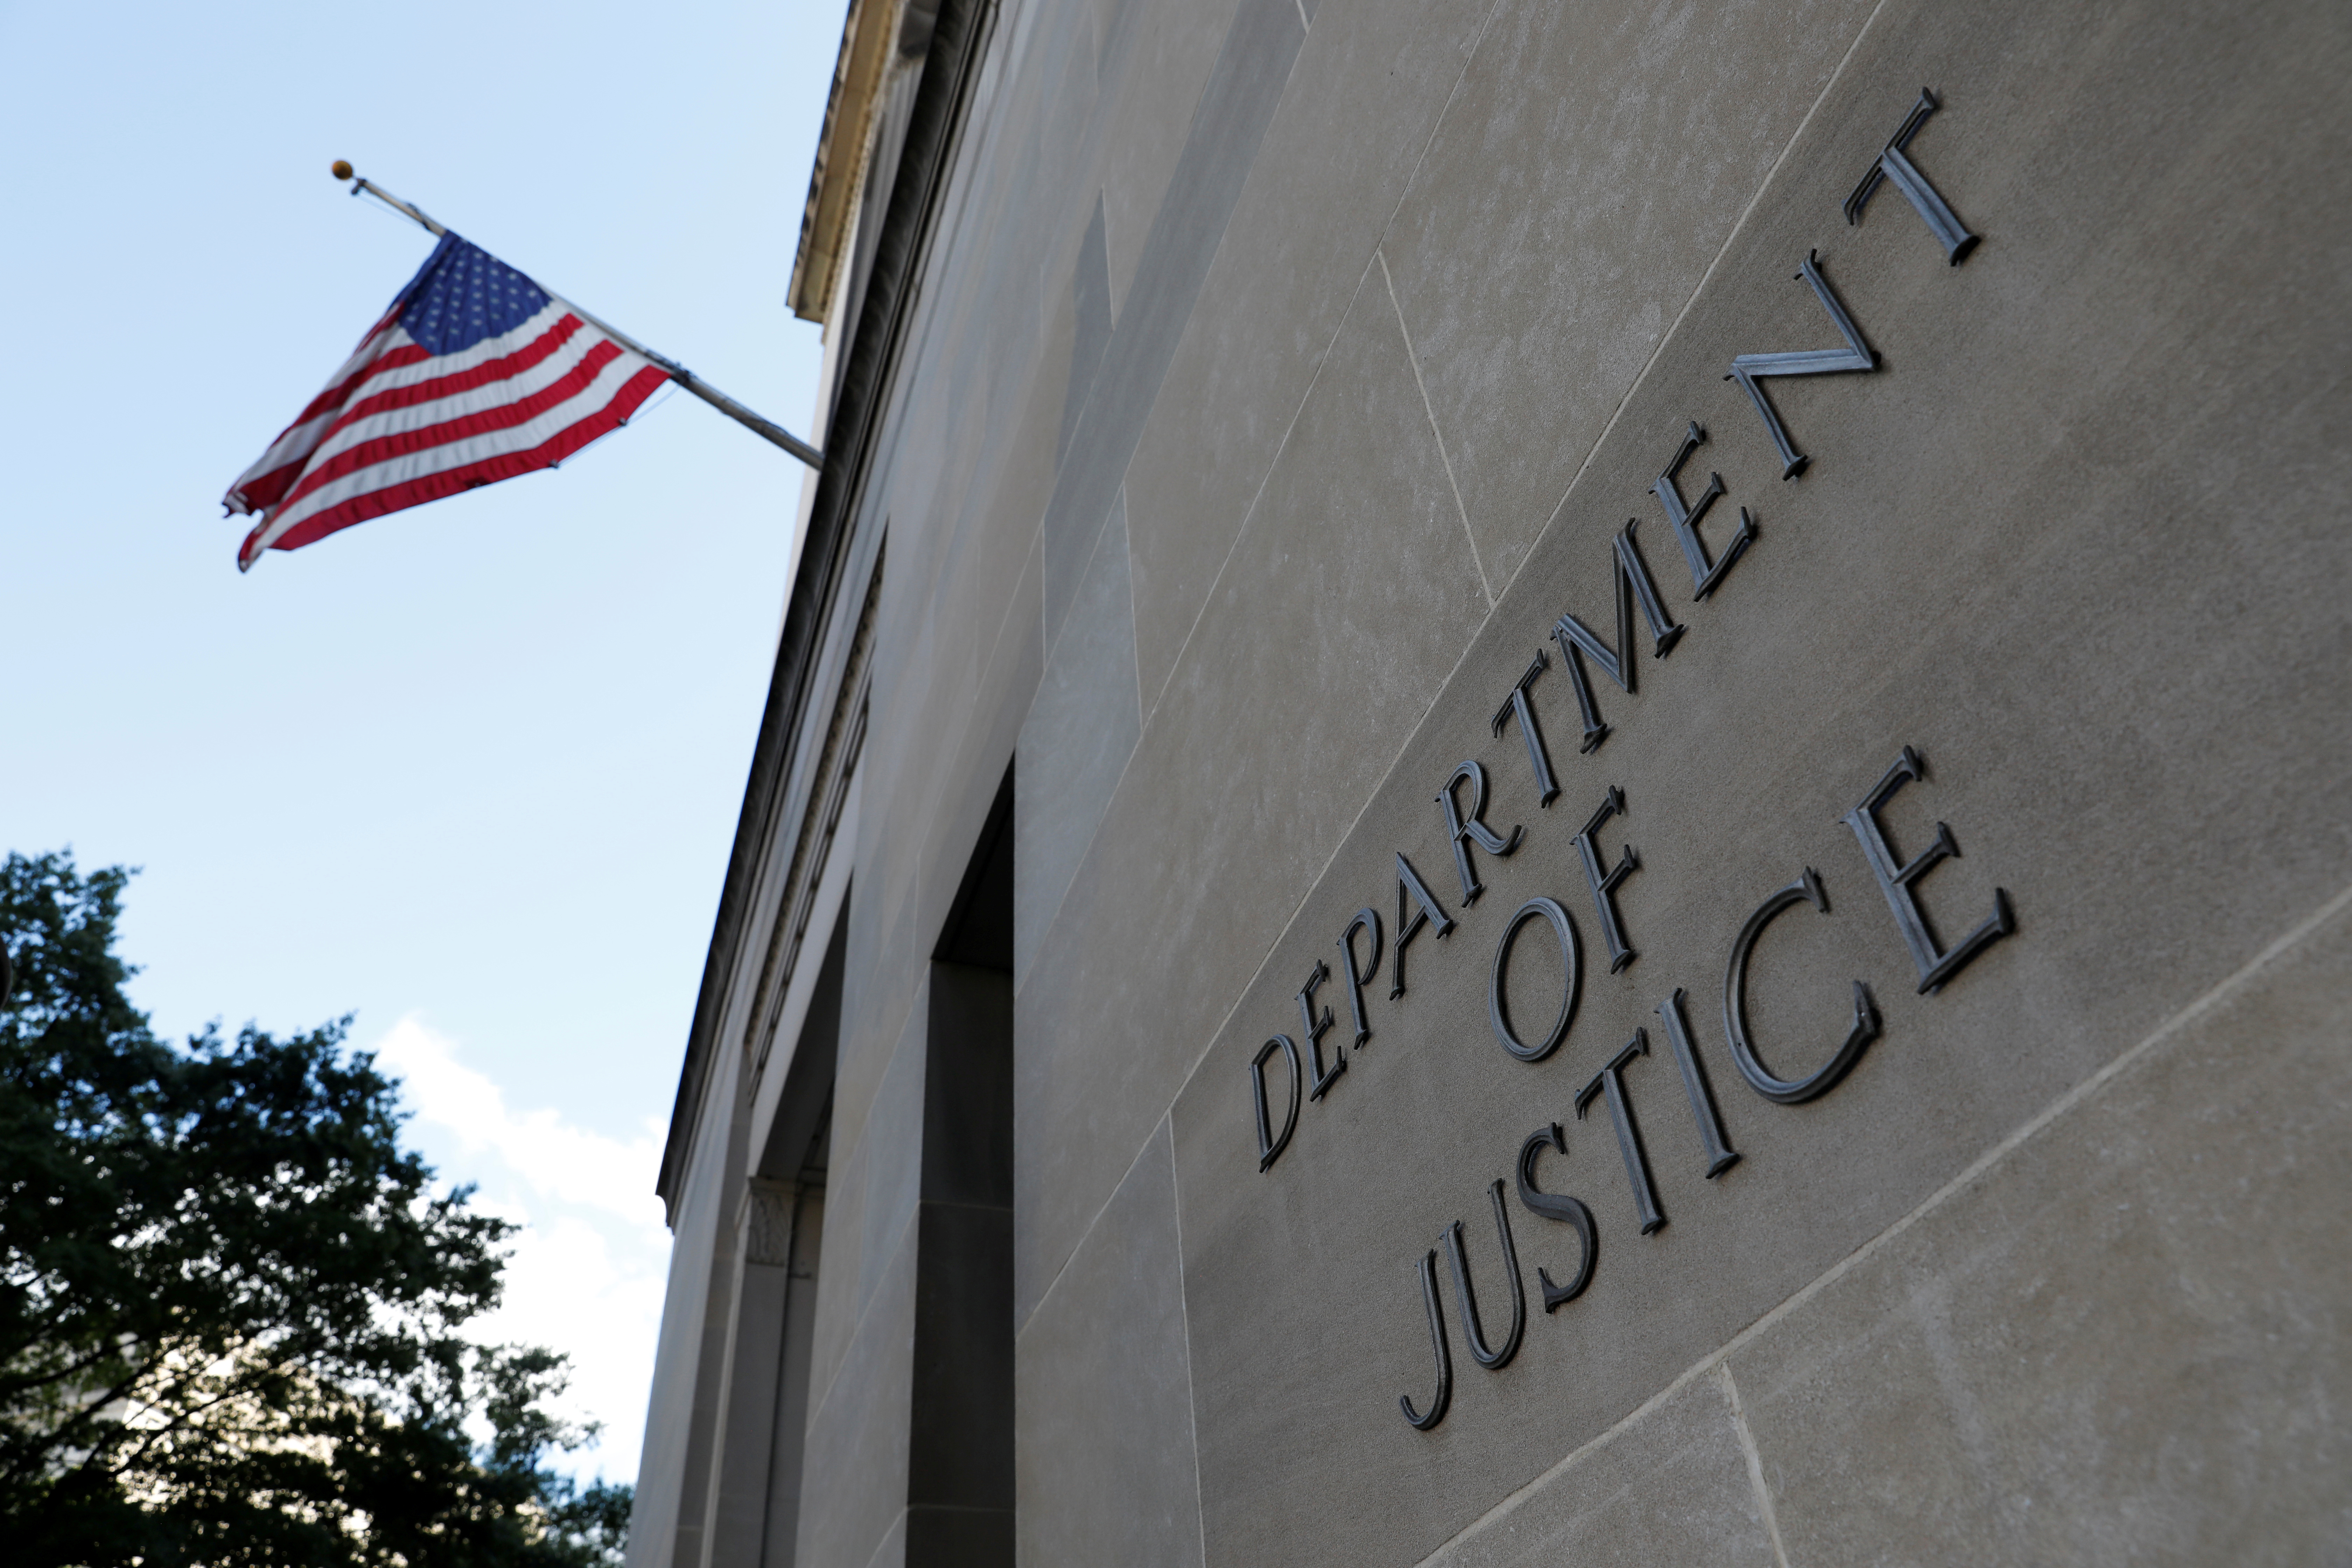 Signage is seen at the United States Department of Justice headquarters in Washington, D.C., U.S., August 29, 2020. REUTERS/Andrew Kelly/File Photo